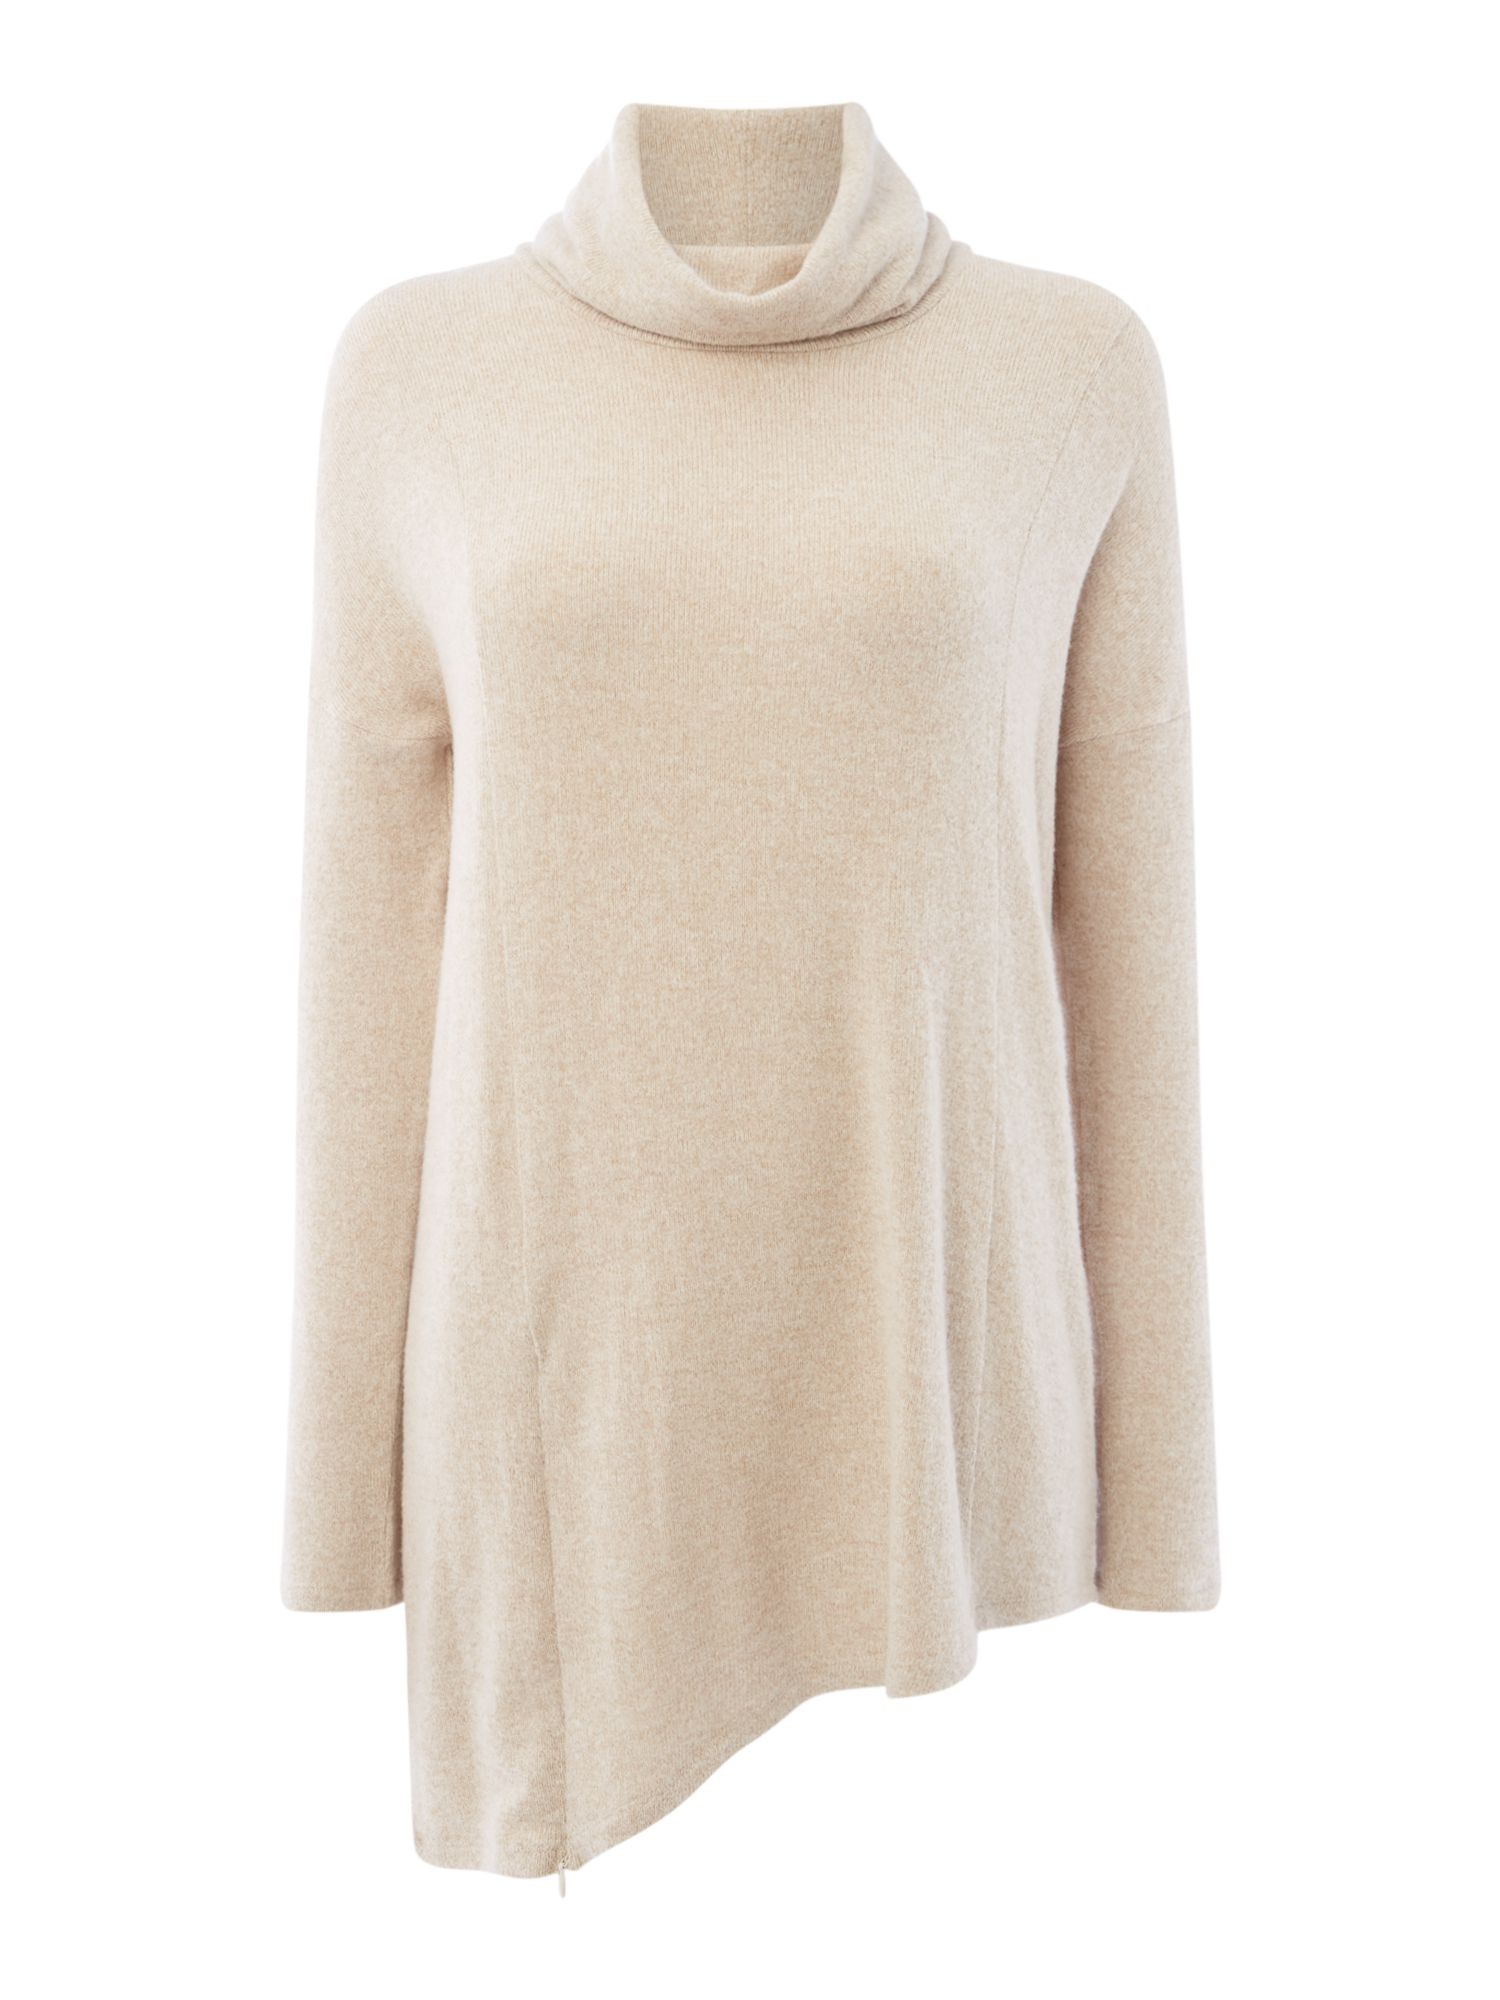 Maison De Nimes Cut and Sew Turtleneck, Oatmeal